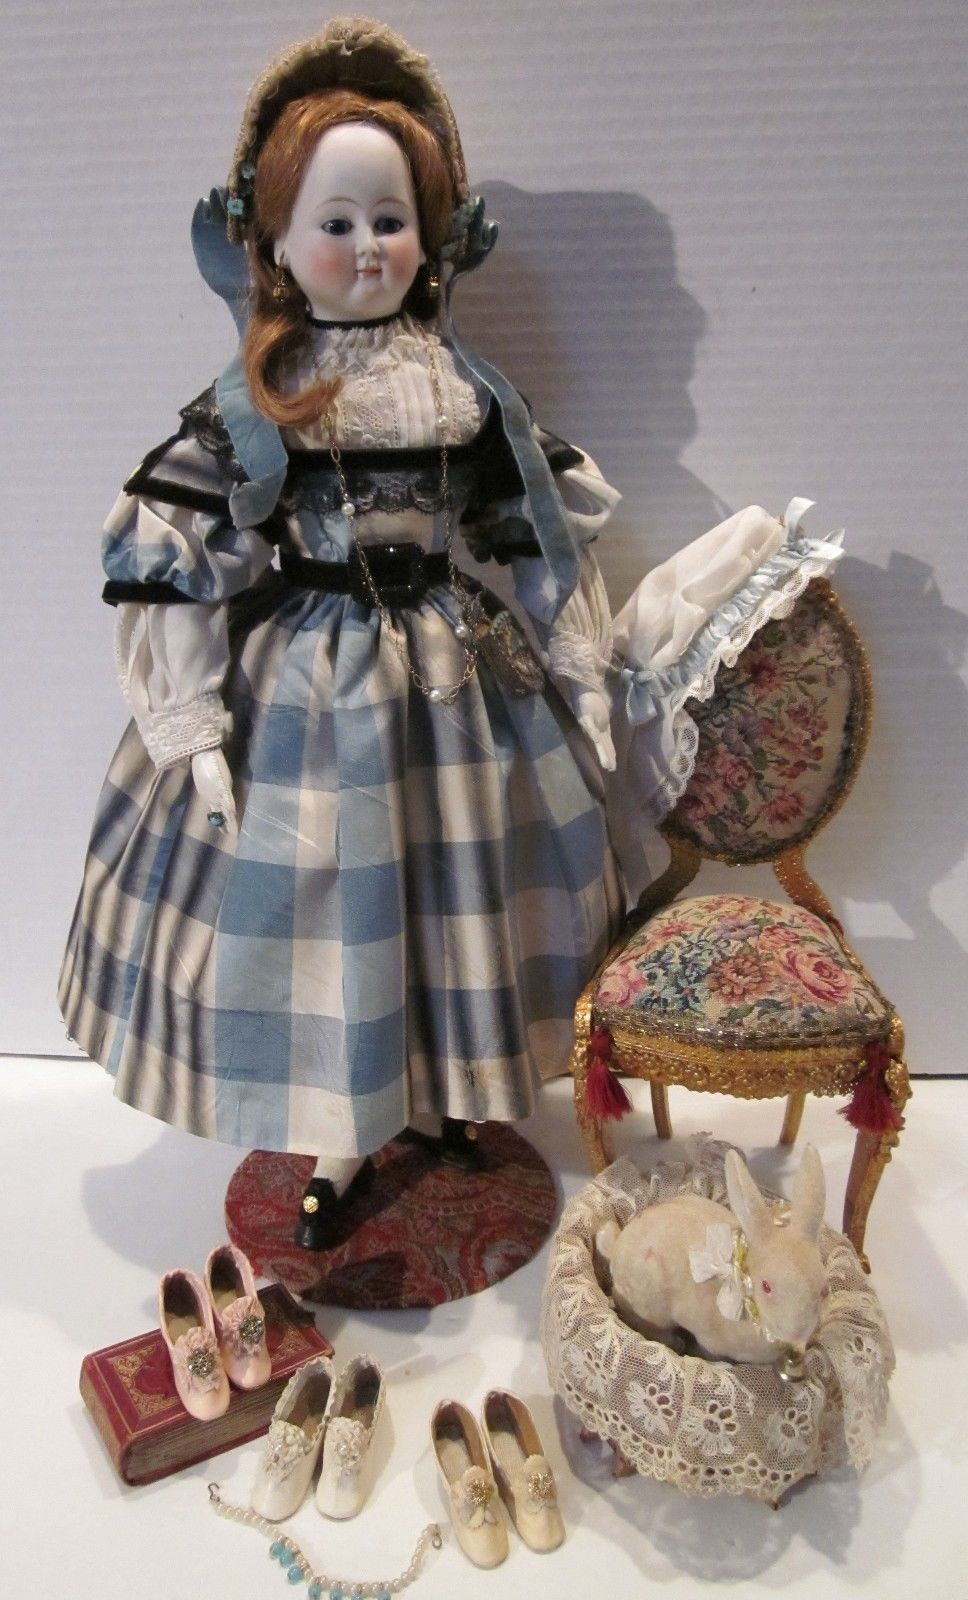 Evangeline A Fashion Doll C 1865 with Her Extensive Wardrobe and Accessories   eBay